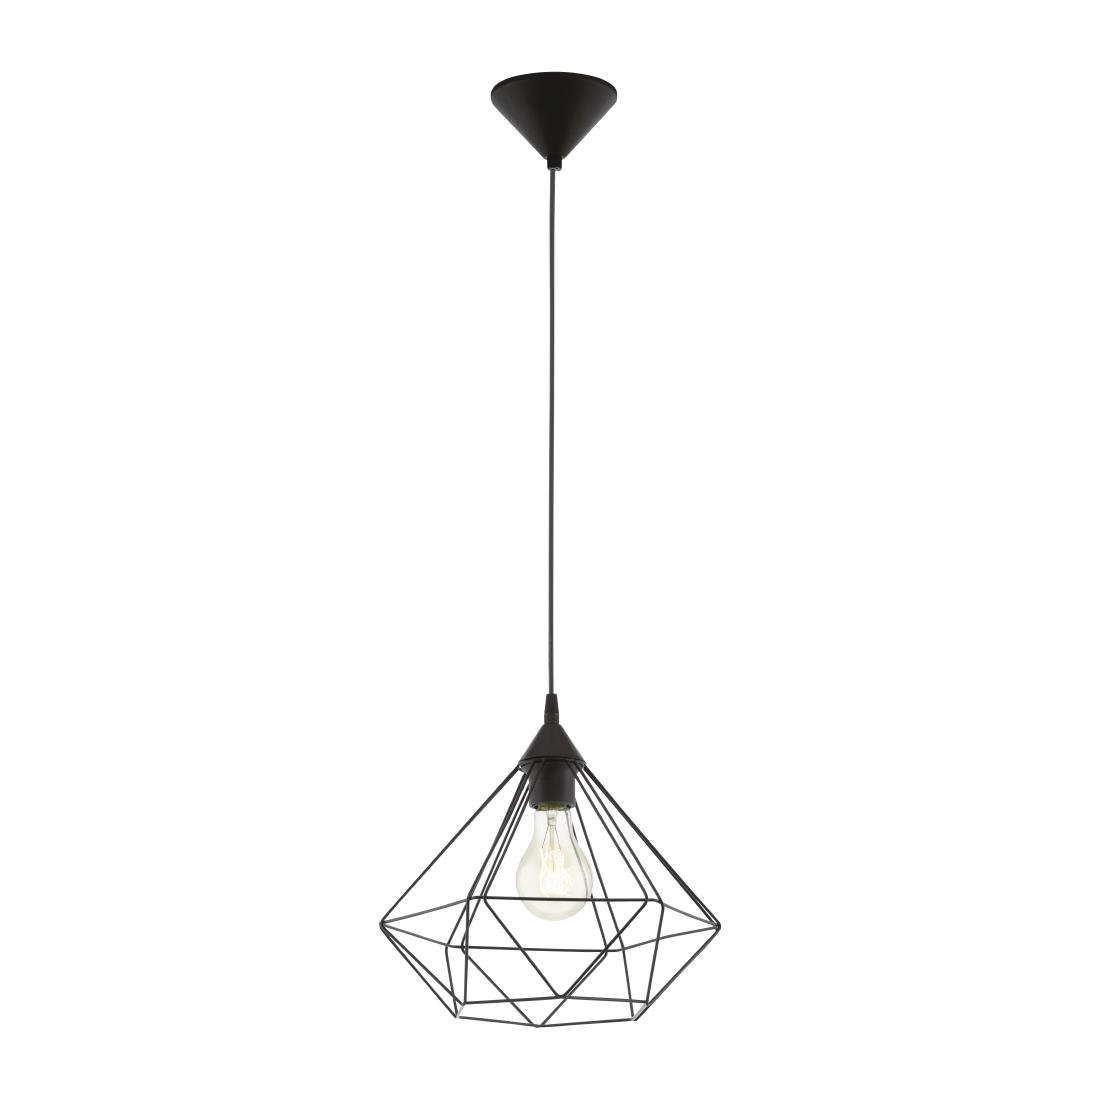 Image of Eglo Tarbes 1 Cage Pendant